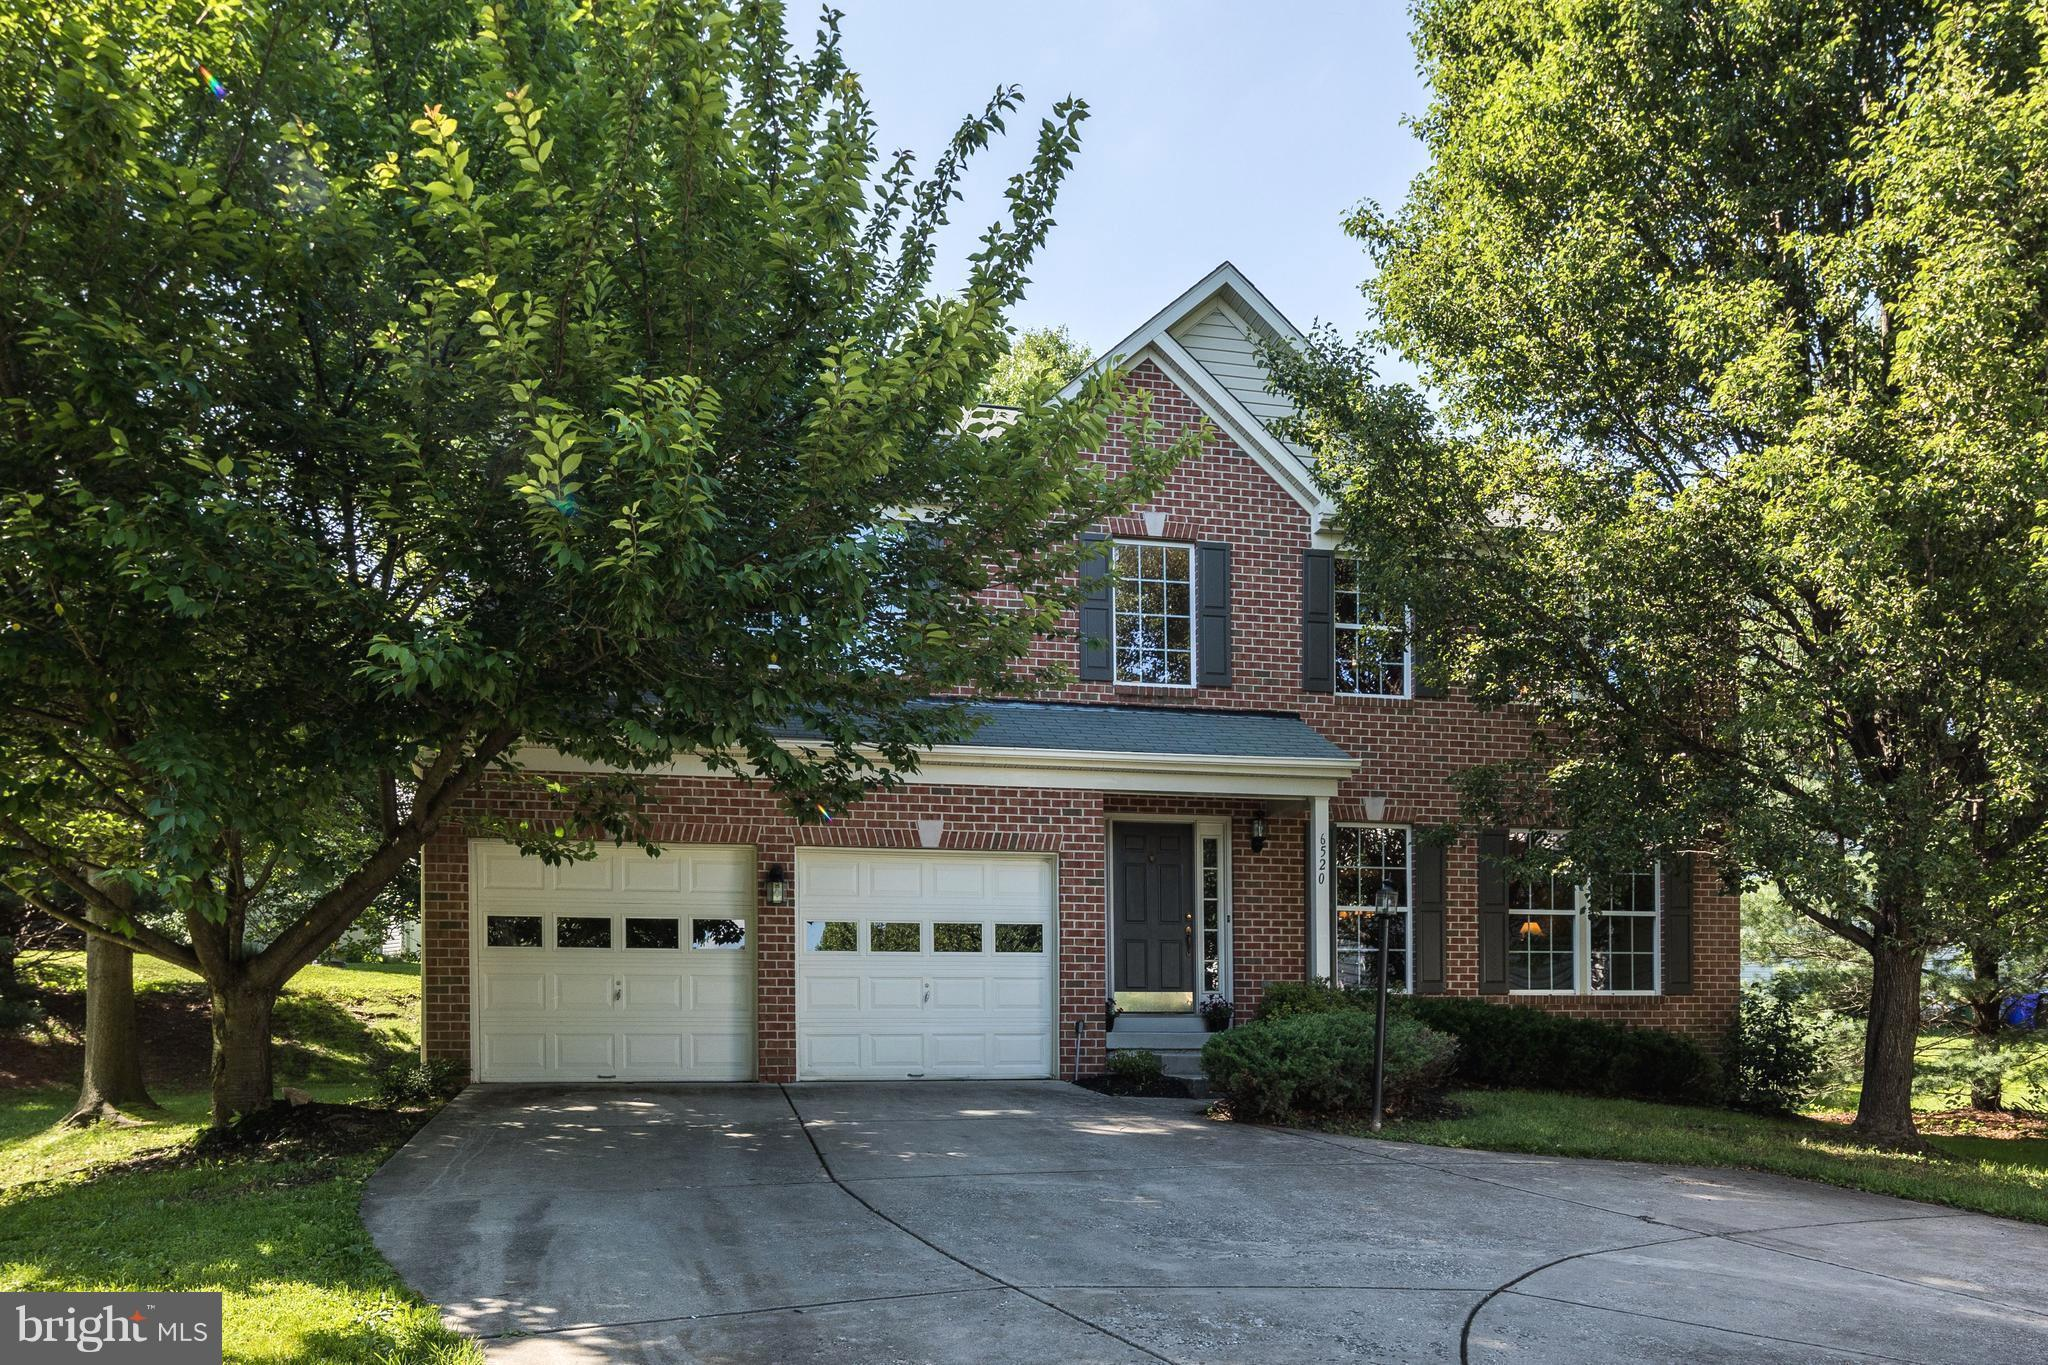 6520 HAZEL THICKET DRIVE, COLUMBIA, MD 21044